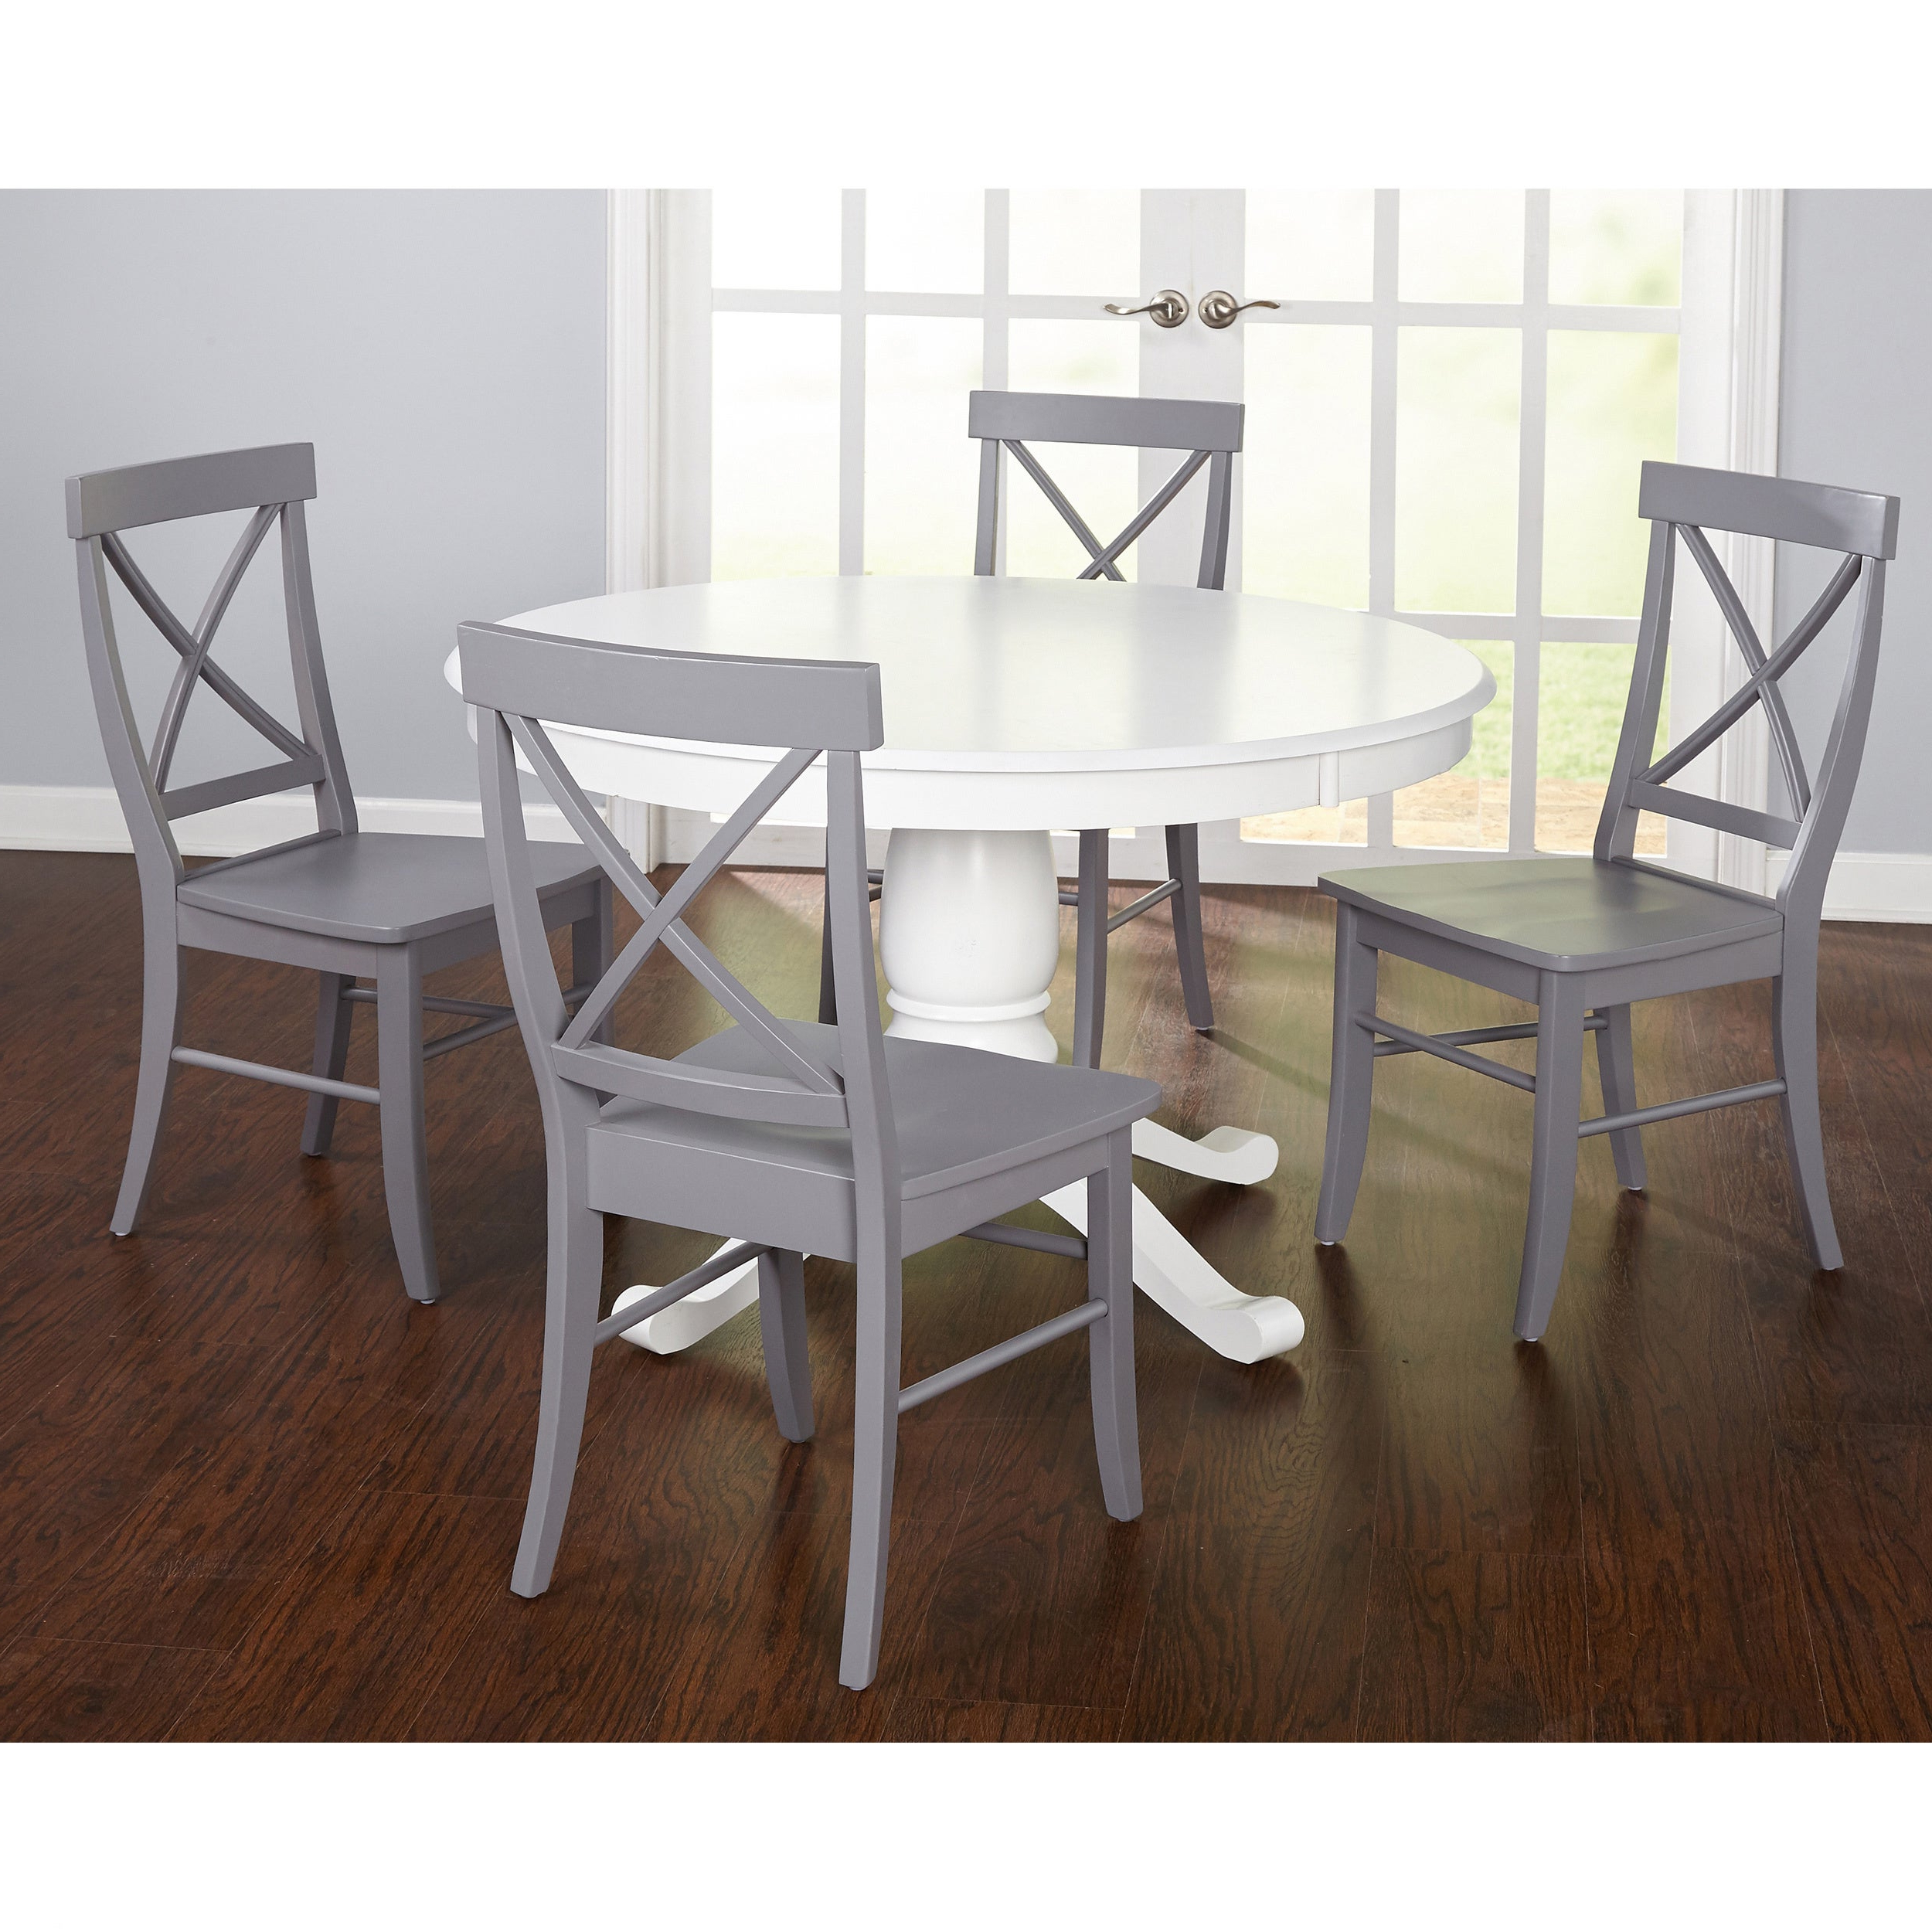 Best and Newest Simple Living 5-Piece Dawson Dining Set inside Dawson Pedestal Dining Tables